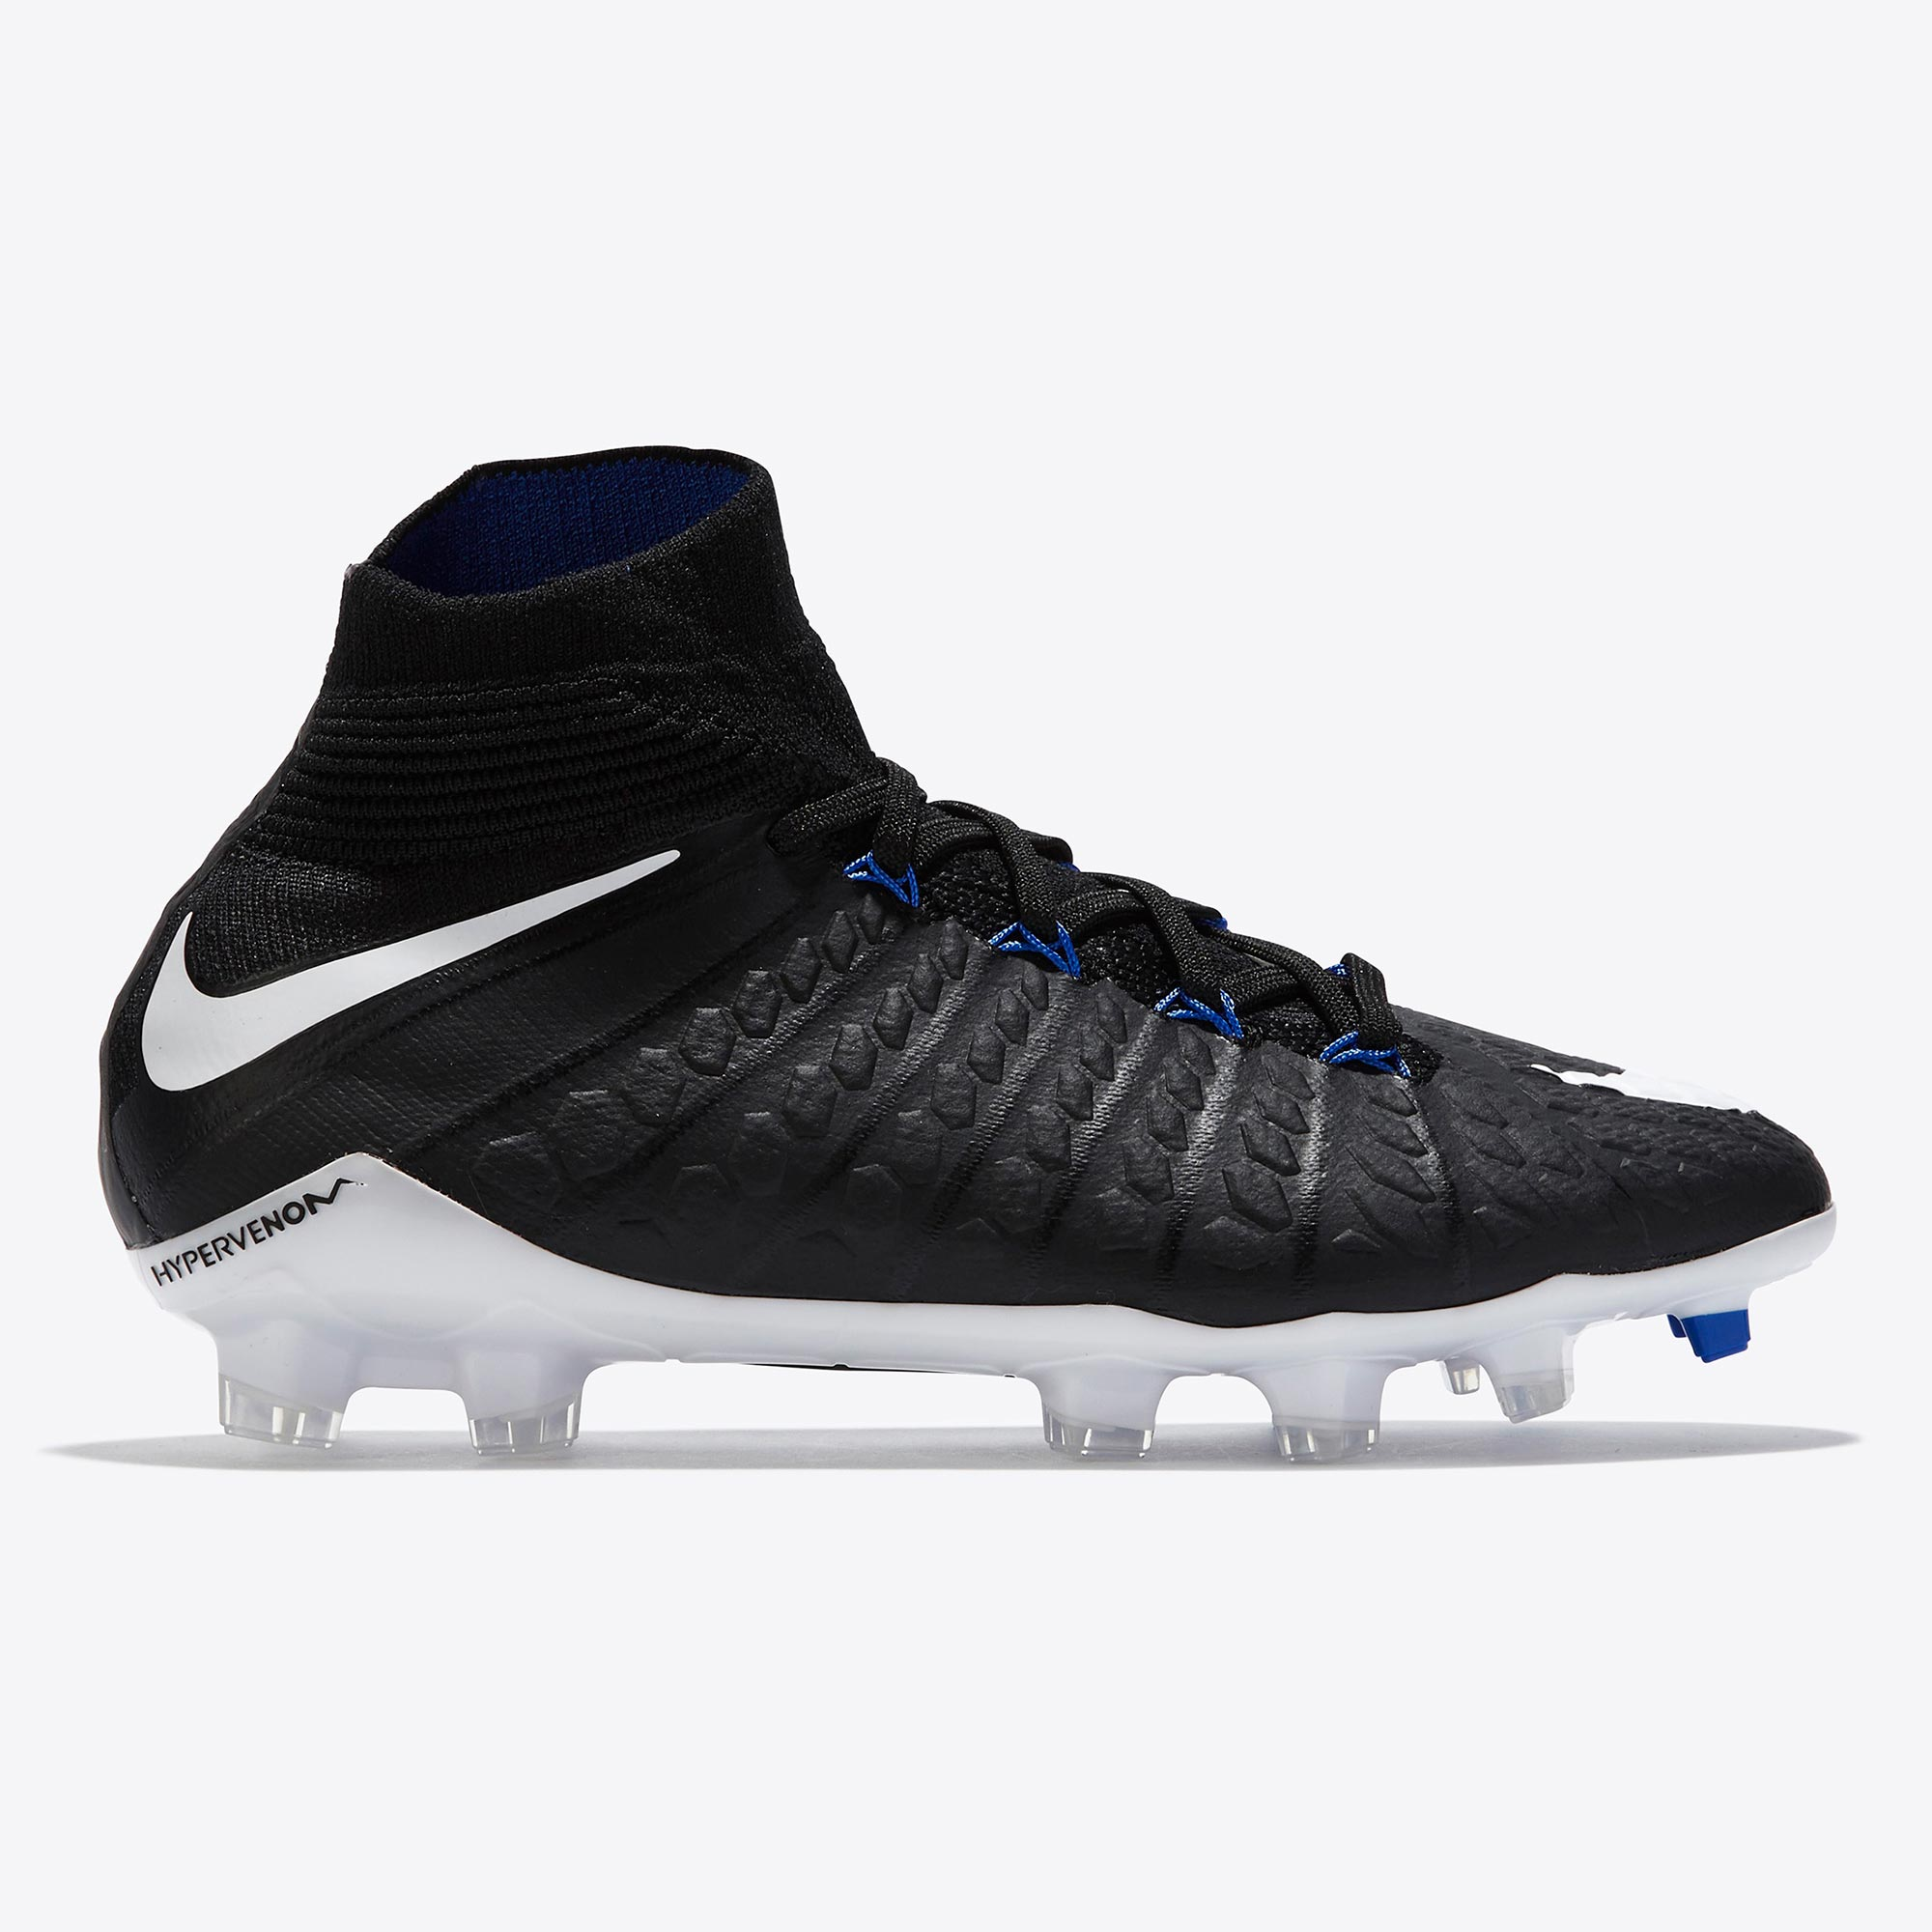 Nike Hypervenom Phantom III Dynamic Fit Firm Ground Football Boots - B